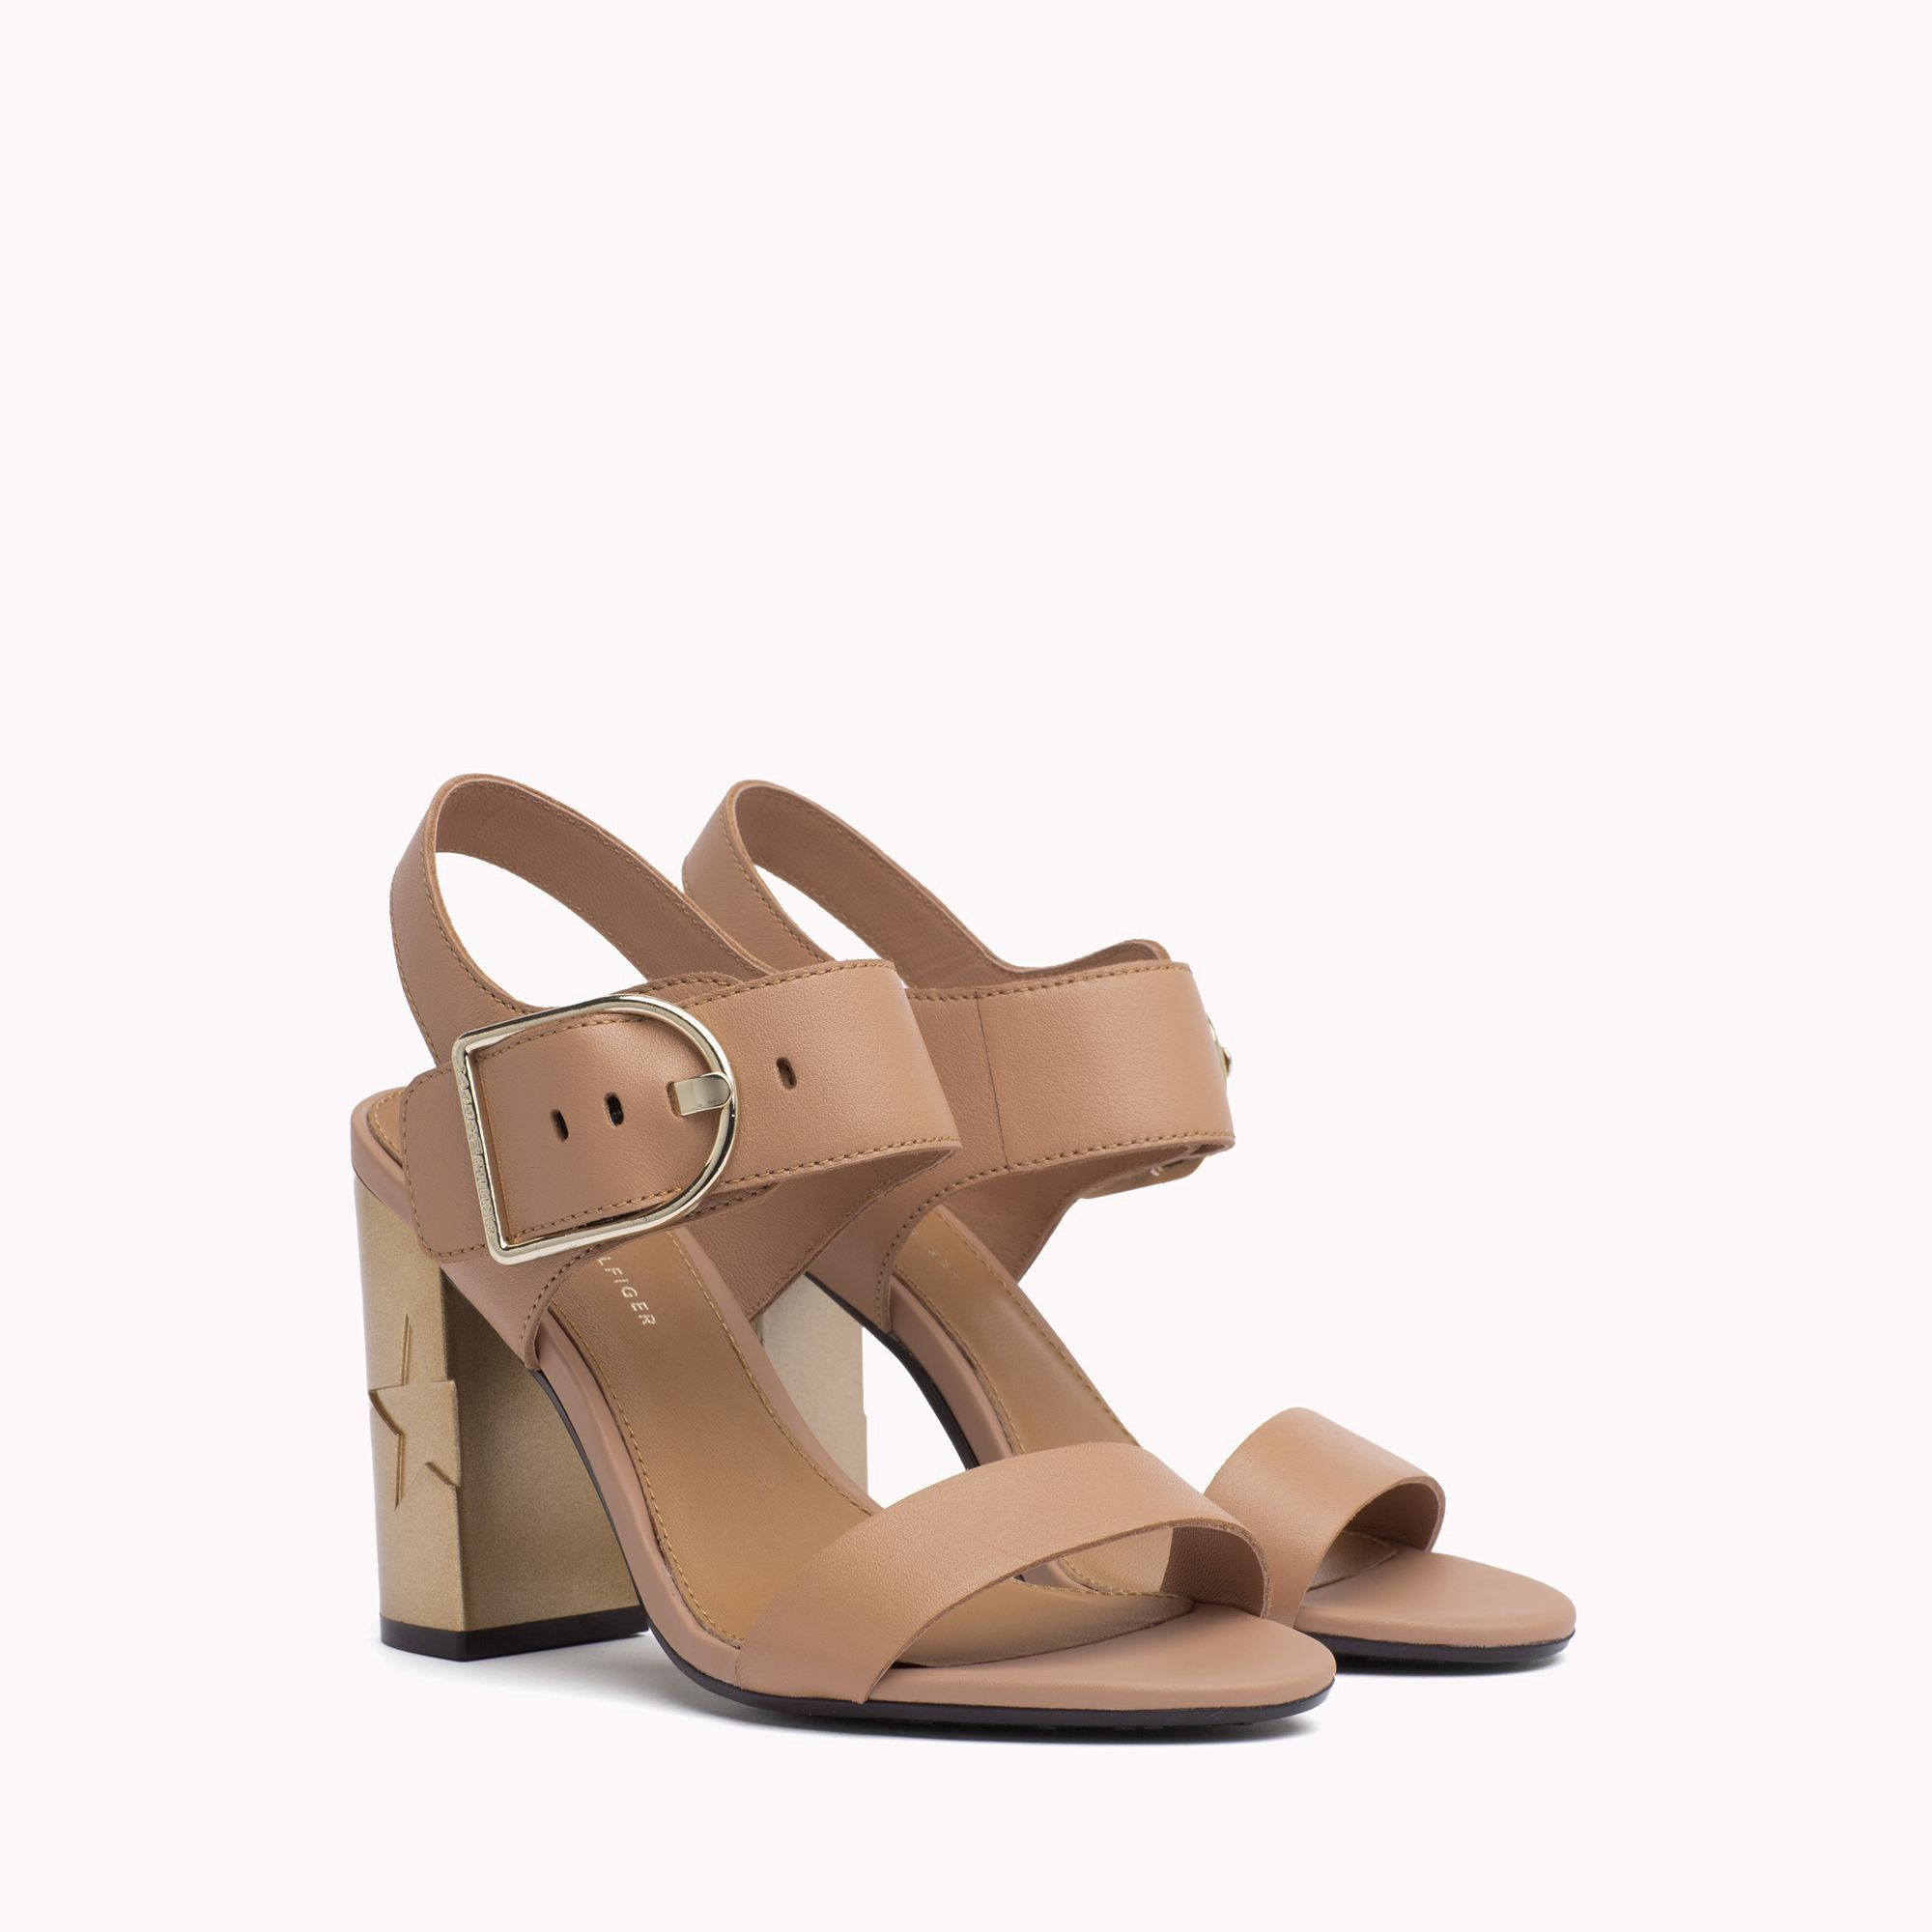 72163876ebf Tommy Hilfiger Star Heel Buckle Sandal - Silky Nude 8.5 | Products ...